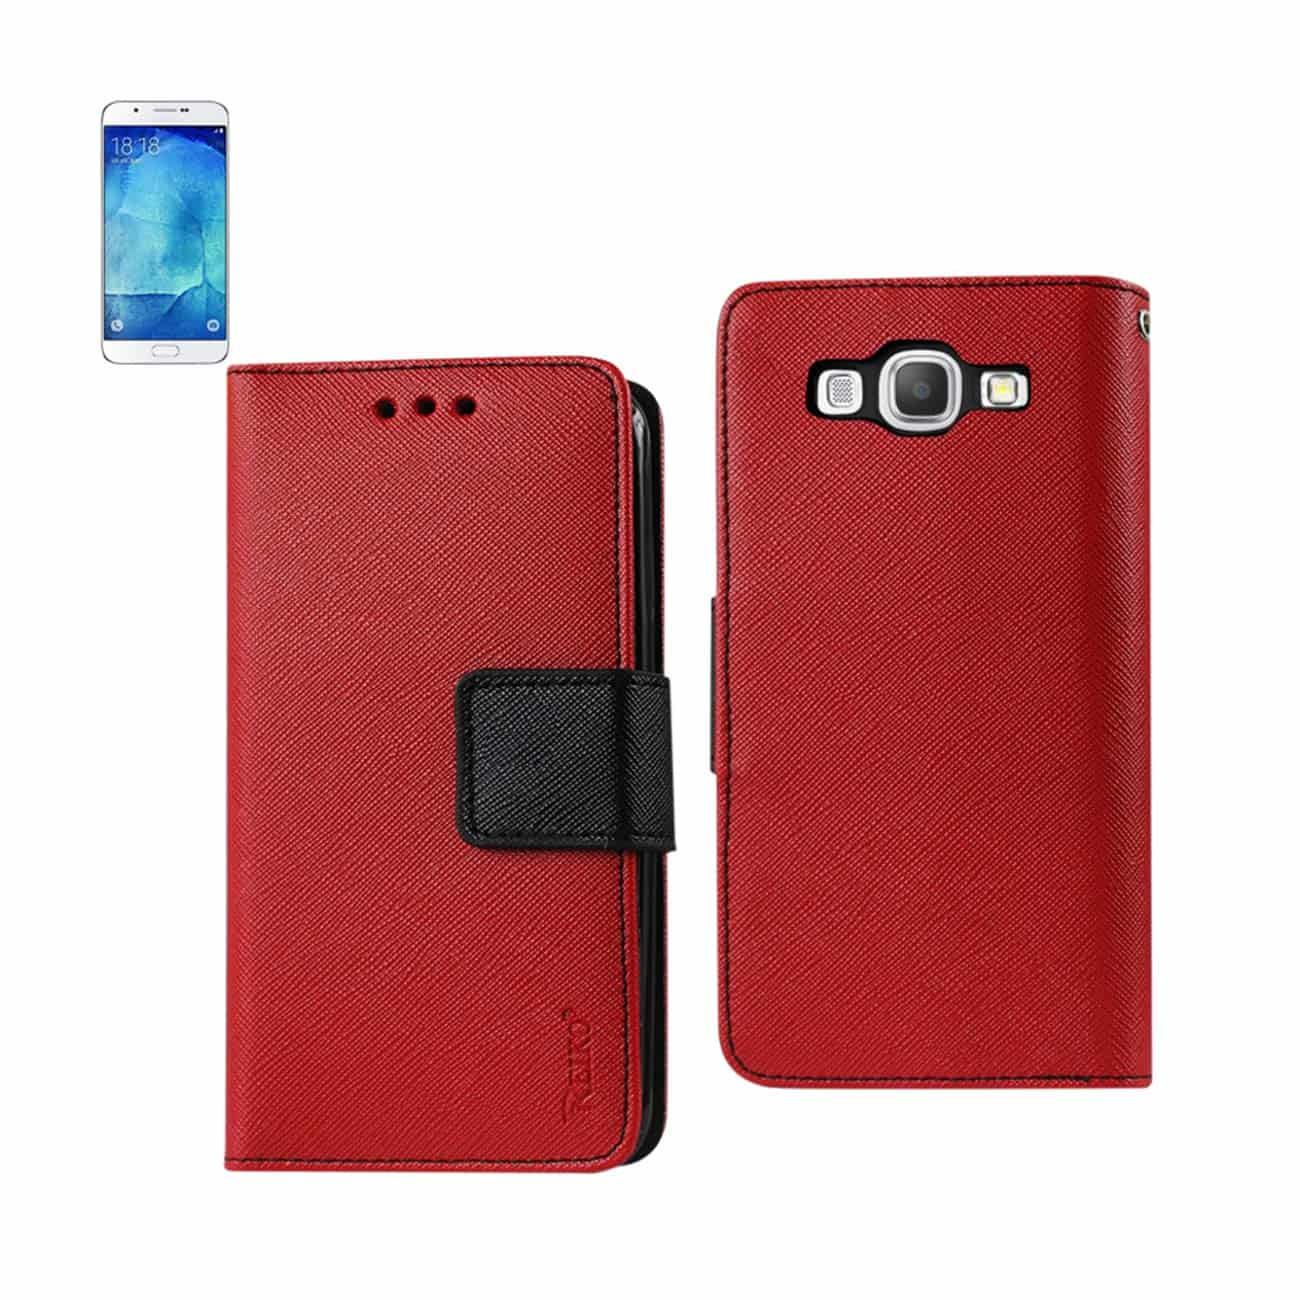 SAMSUNG GALAXY A8 3-IN-1 WALLET CASE IN RED